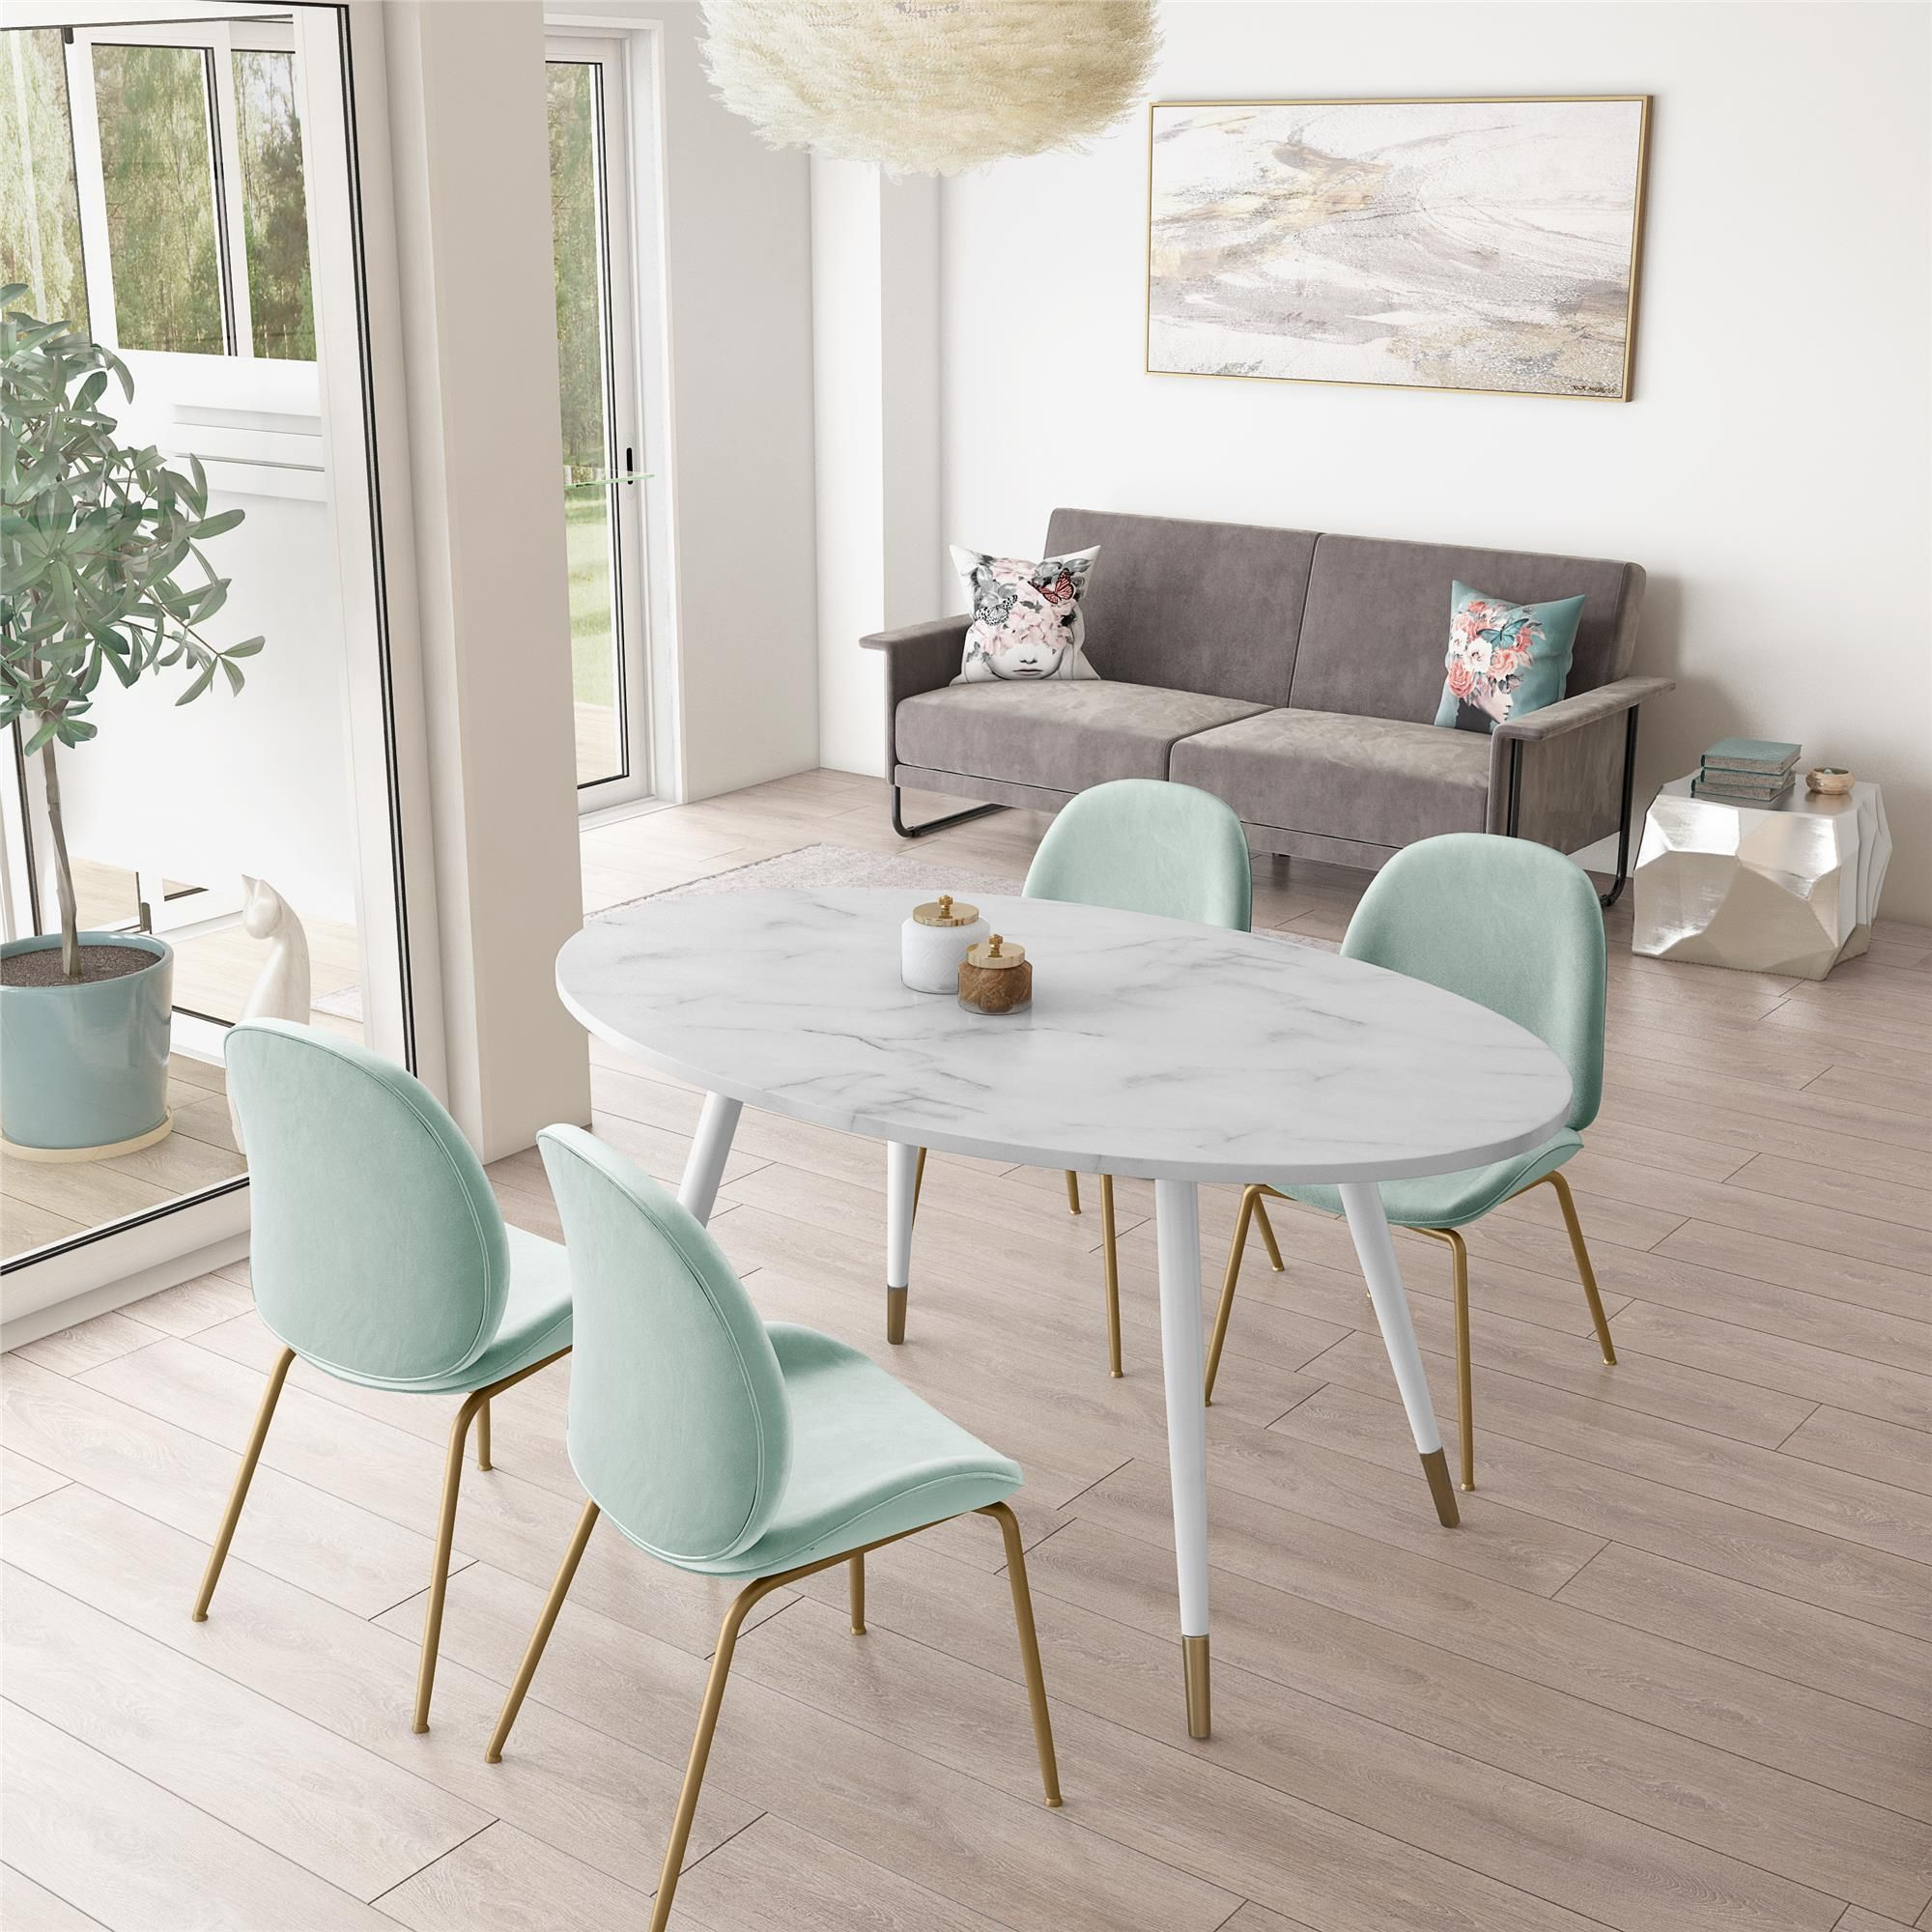 Cosmoliving Amari Faux Marble Dining Table Walmart Com Dining Table Marble Faux Marble Dining Table Modern Oval Dining Table